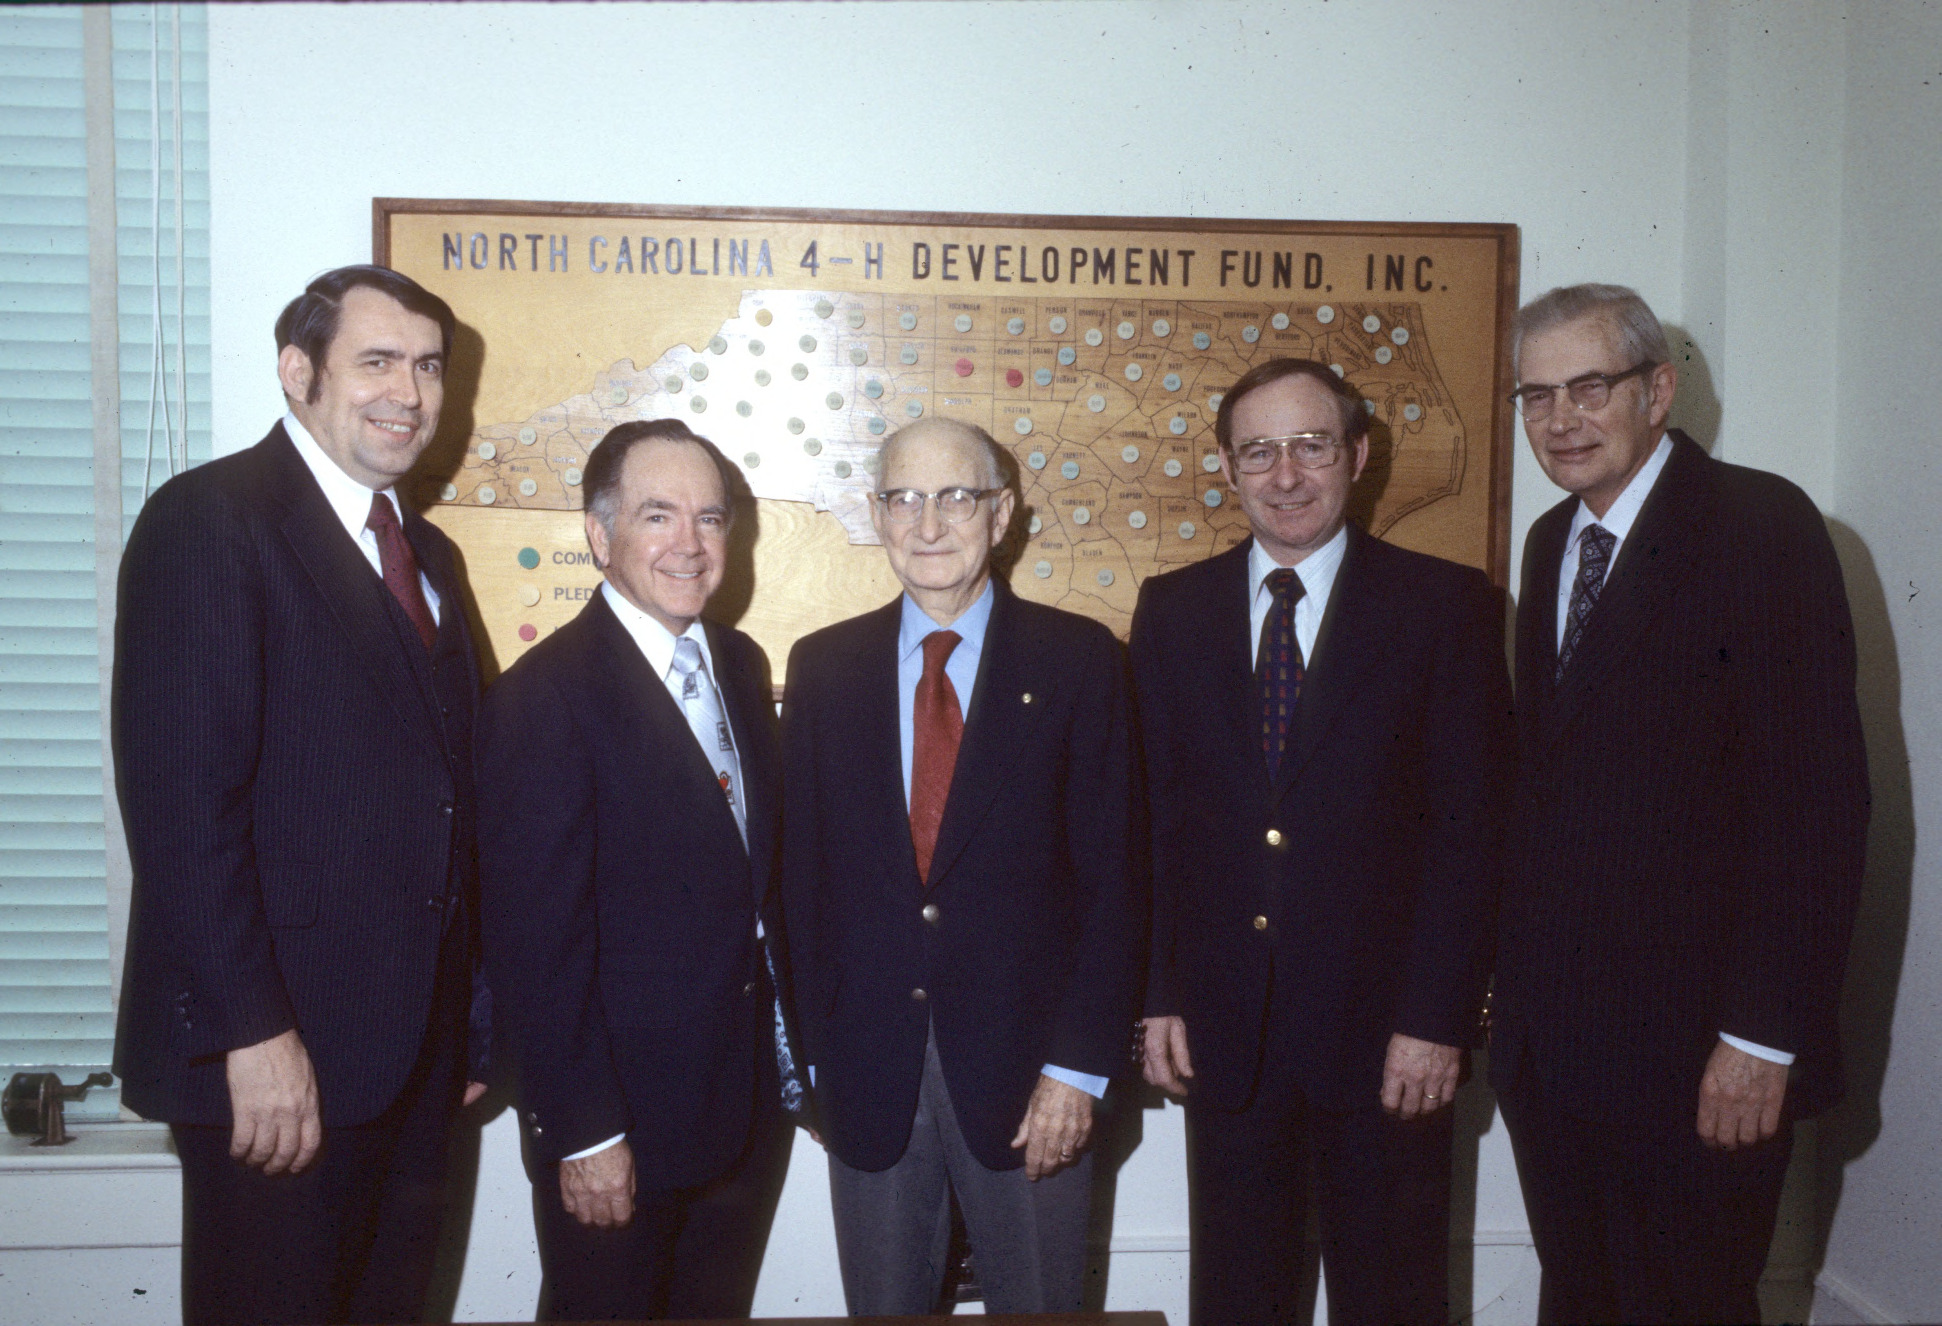 L. R. Harrill with Blalock, Black, Stormer, and Hyatt